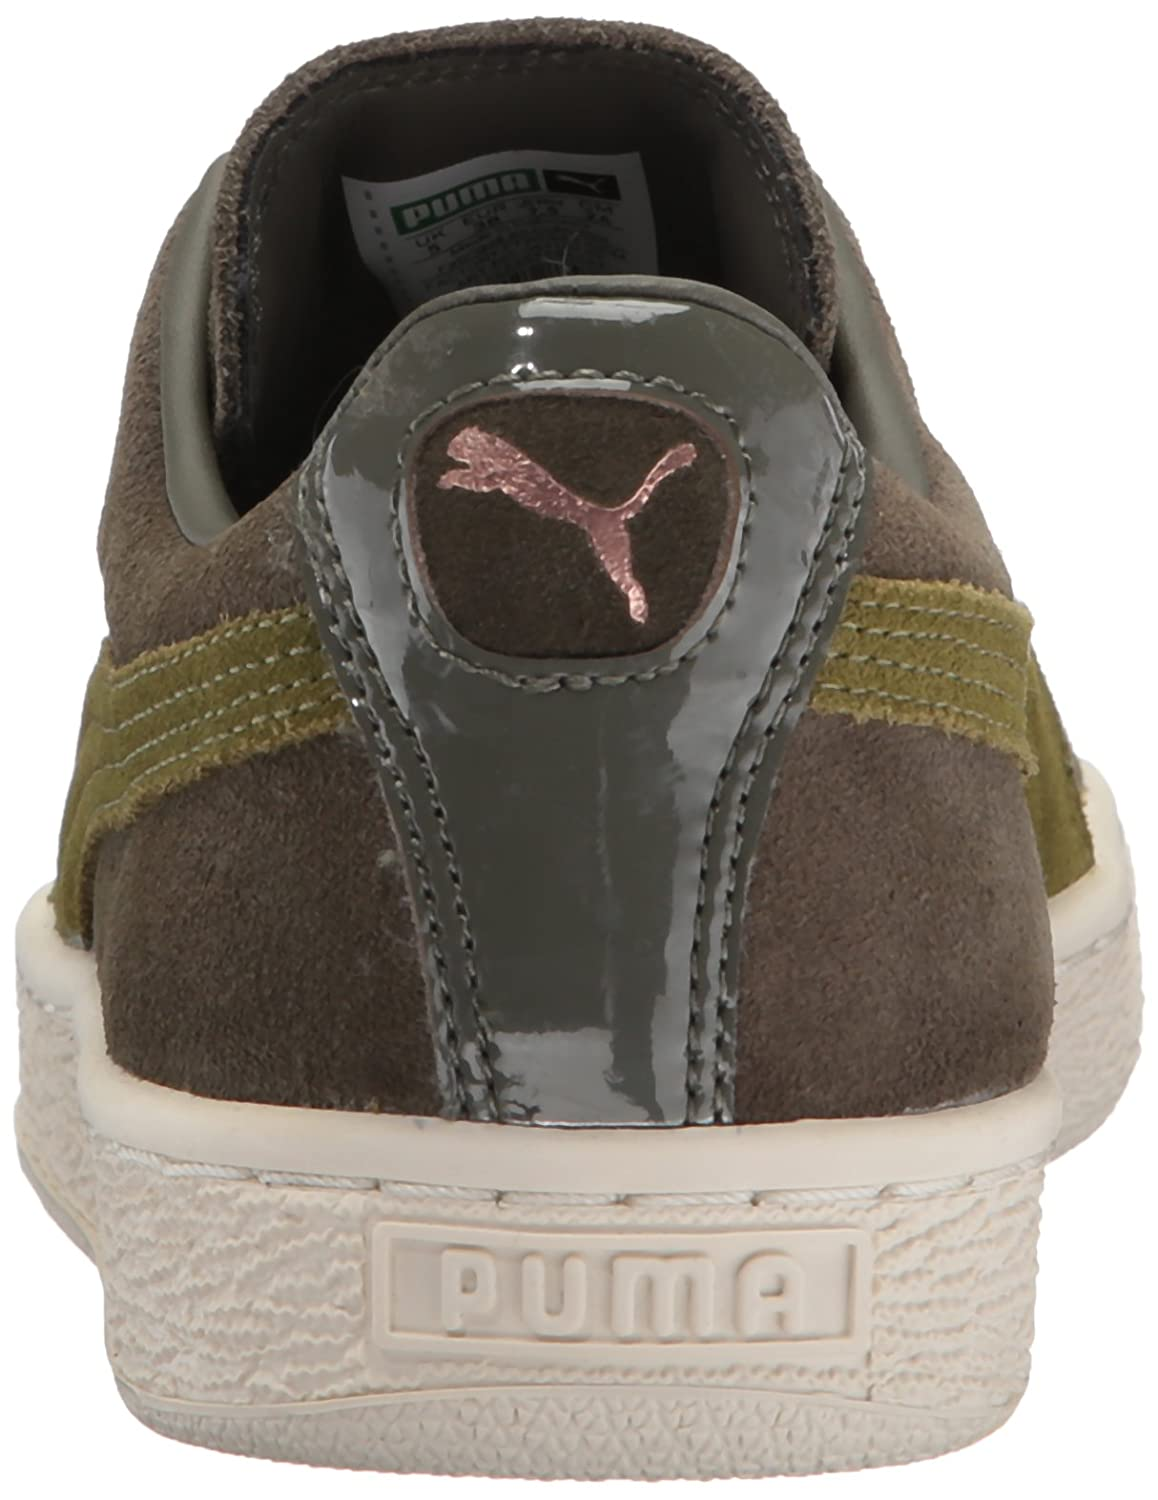 PUMA Womens Suede XL Lace vr Wn Olive Night-Avocado 6 M US